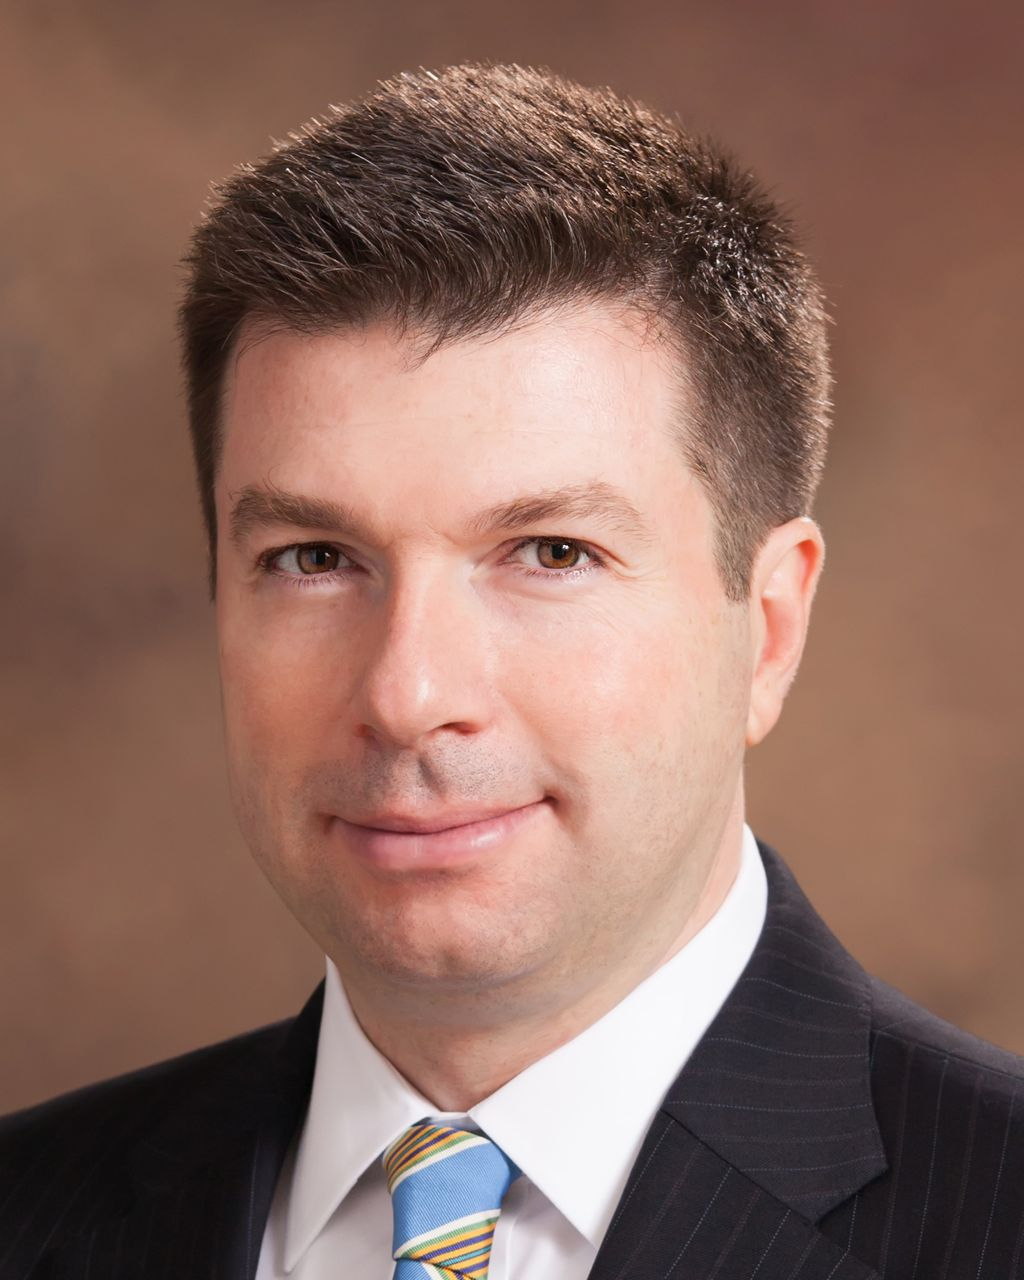 Patrick Cote, financial advisor Rockland MA